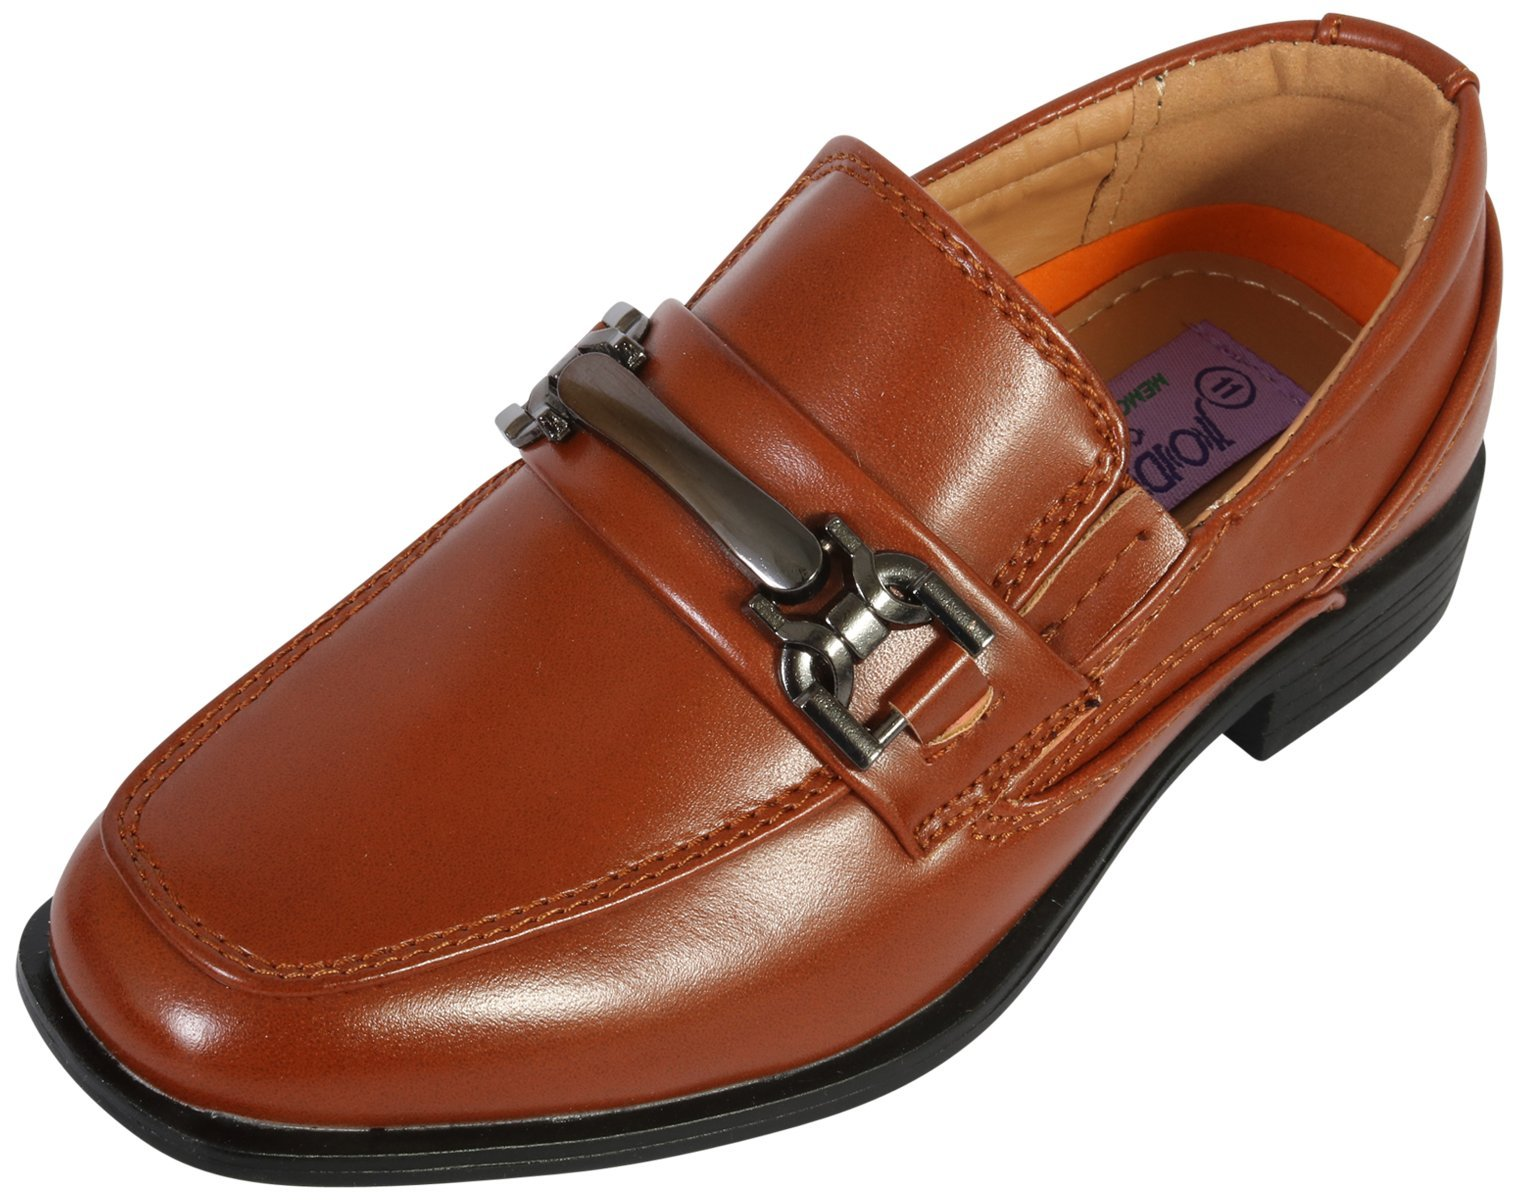 Jodano Collection Boys Comfort Slip On Loafers, Cognac Buckle, 1 M US Little Kid''